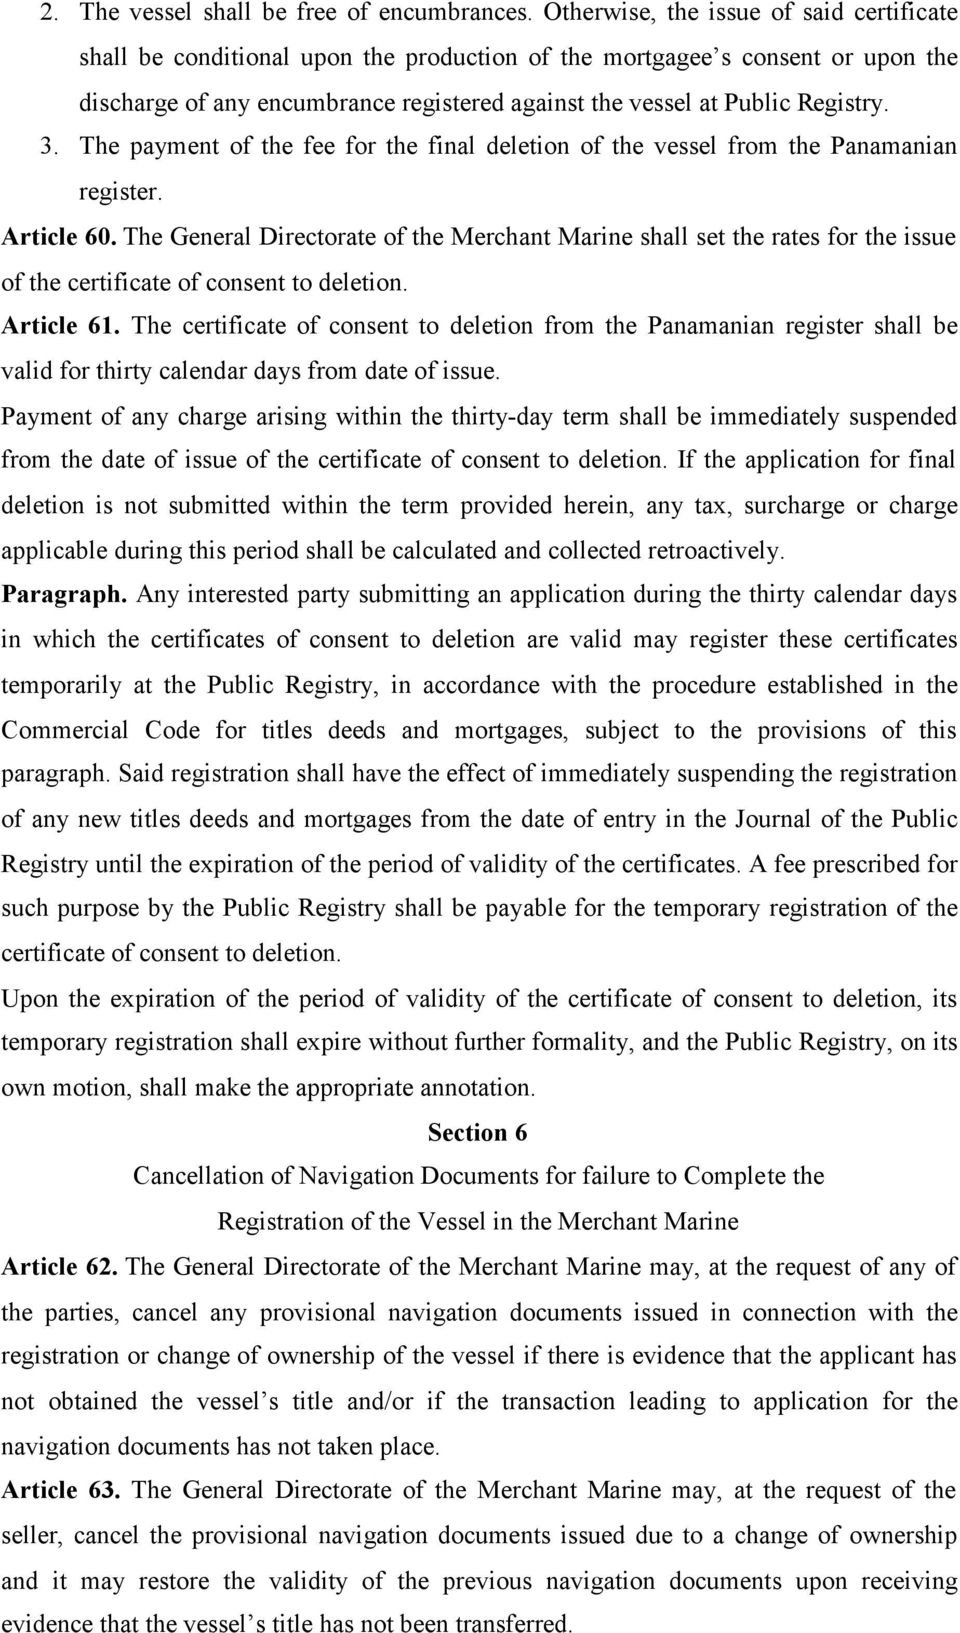 3. The payment of the fee for the final deletion of the vessel from the Panamanian register. Article 60.